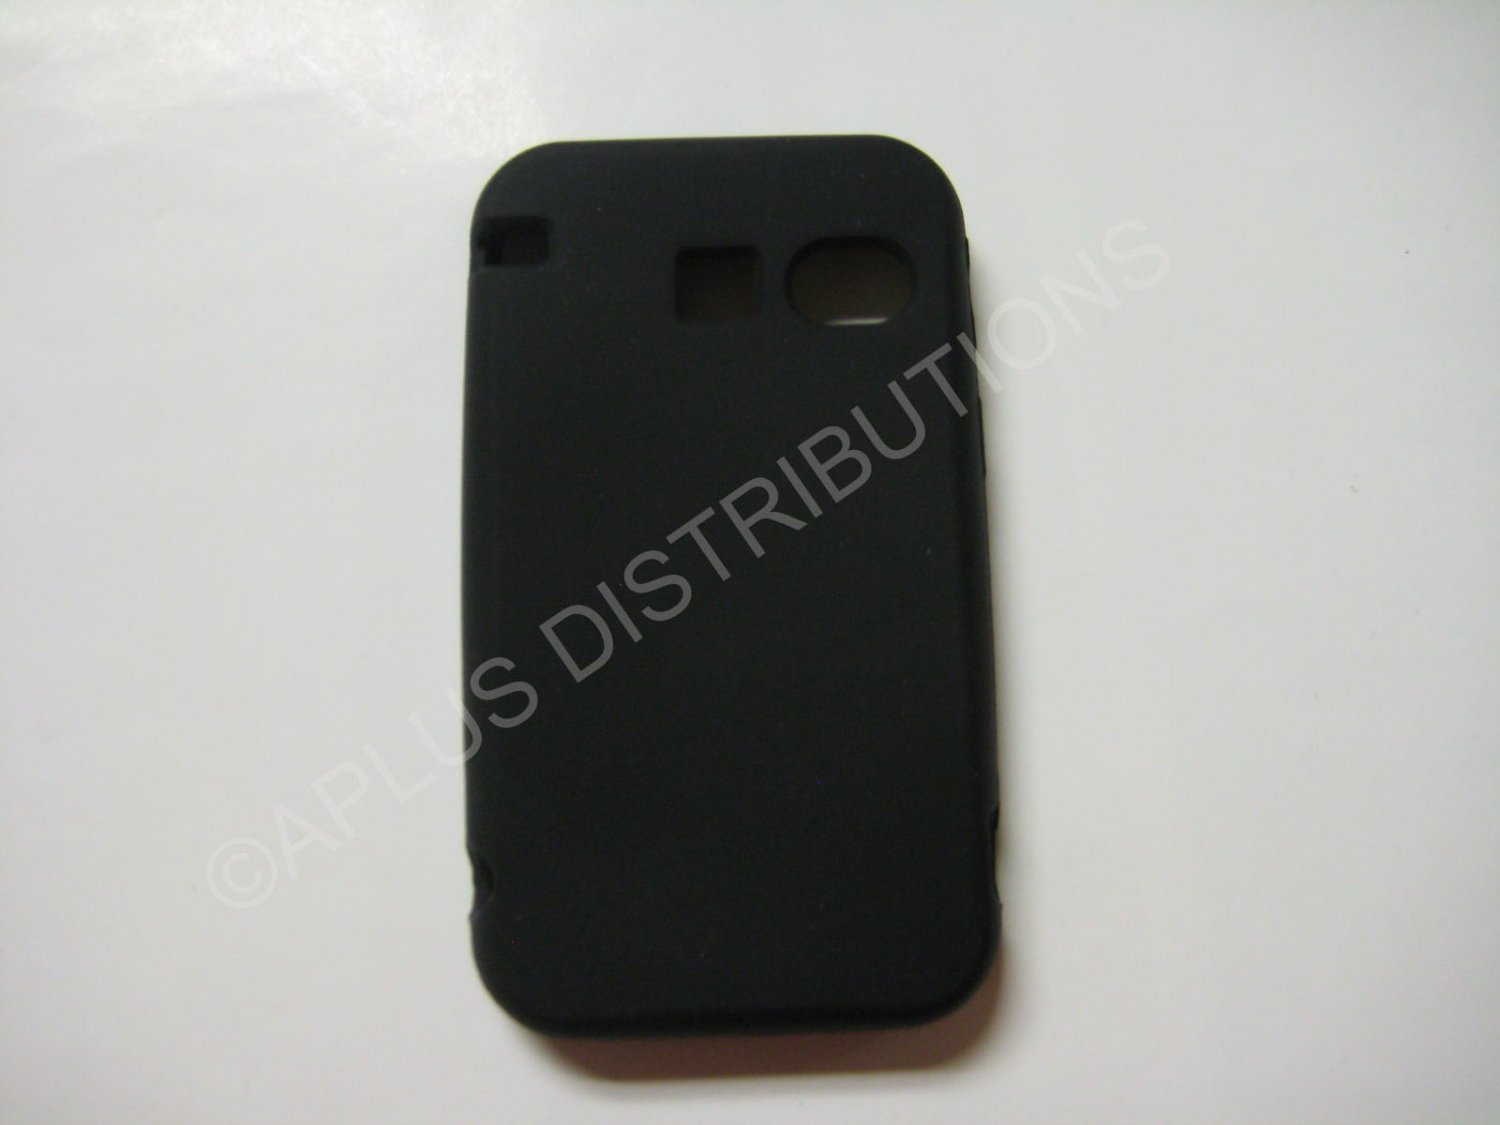 New Black Solid Color Silicone Skin Case Cover For SANYO SCP 2700 - (0006)